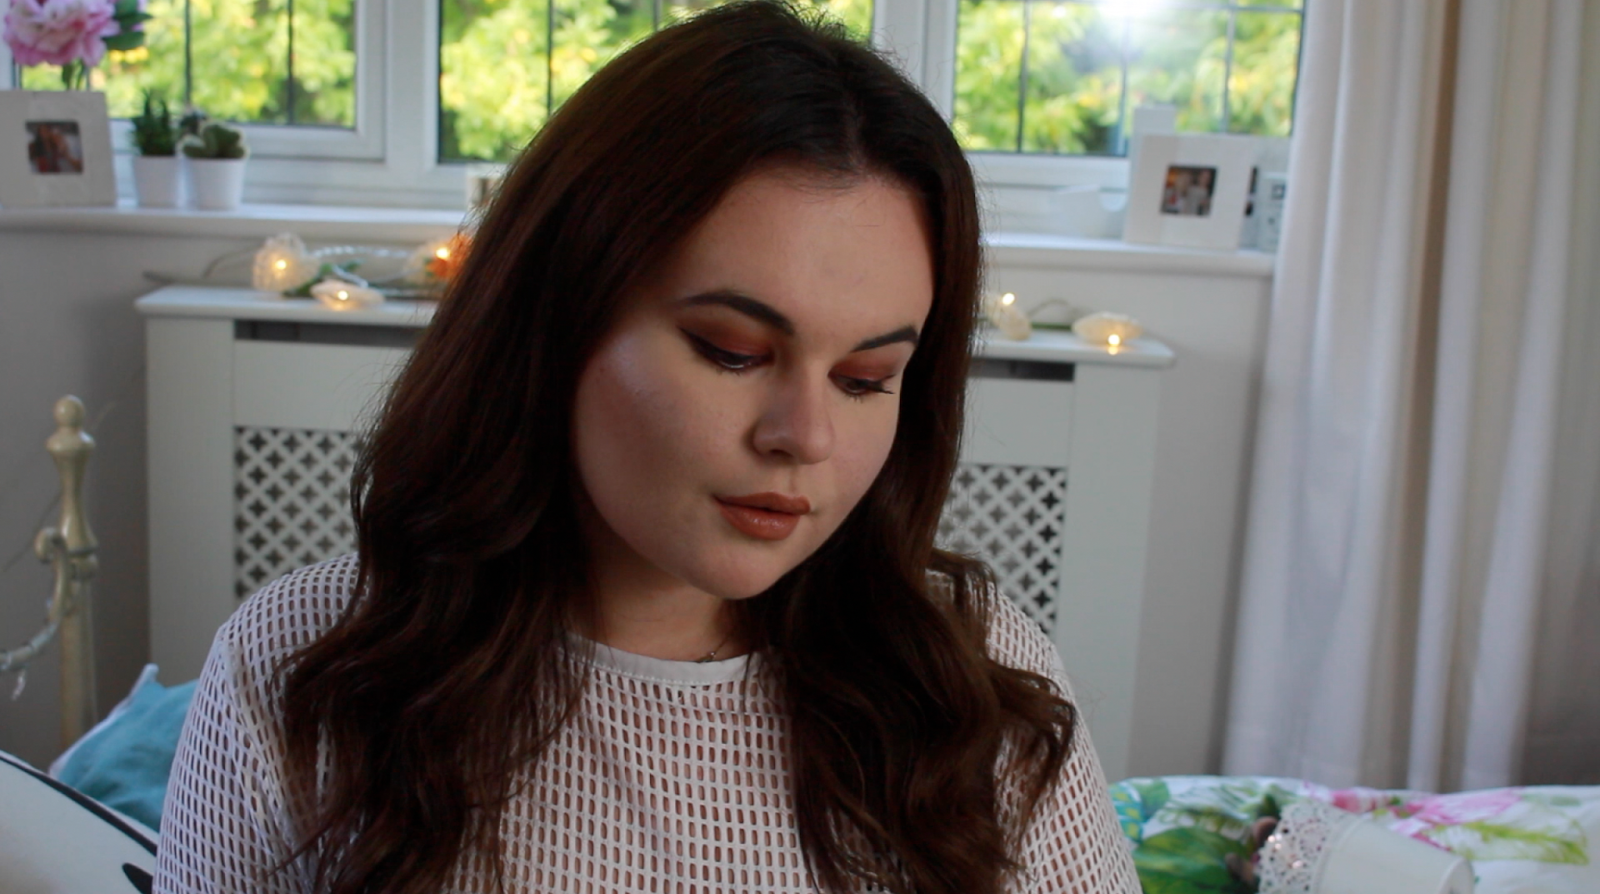 Smokey Eye and Nude Lip Make Up YouTube Tutorial